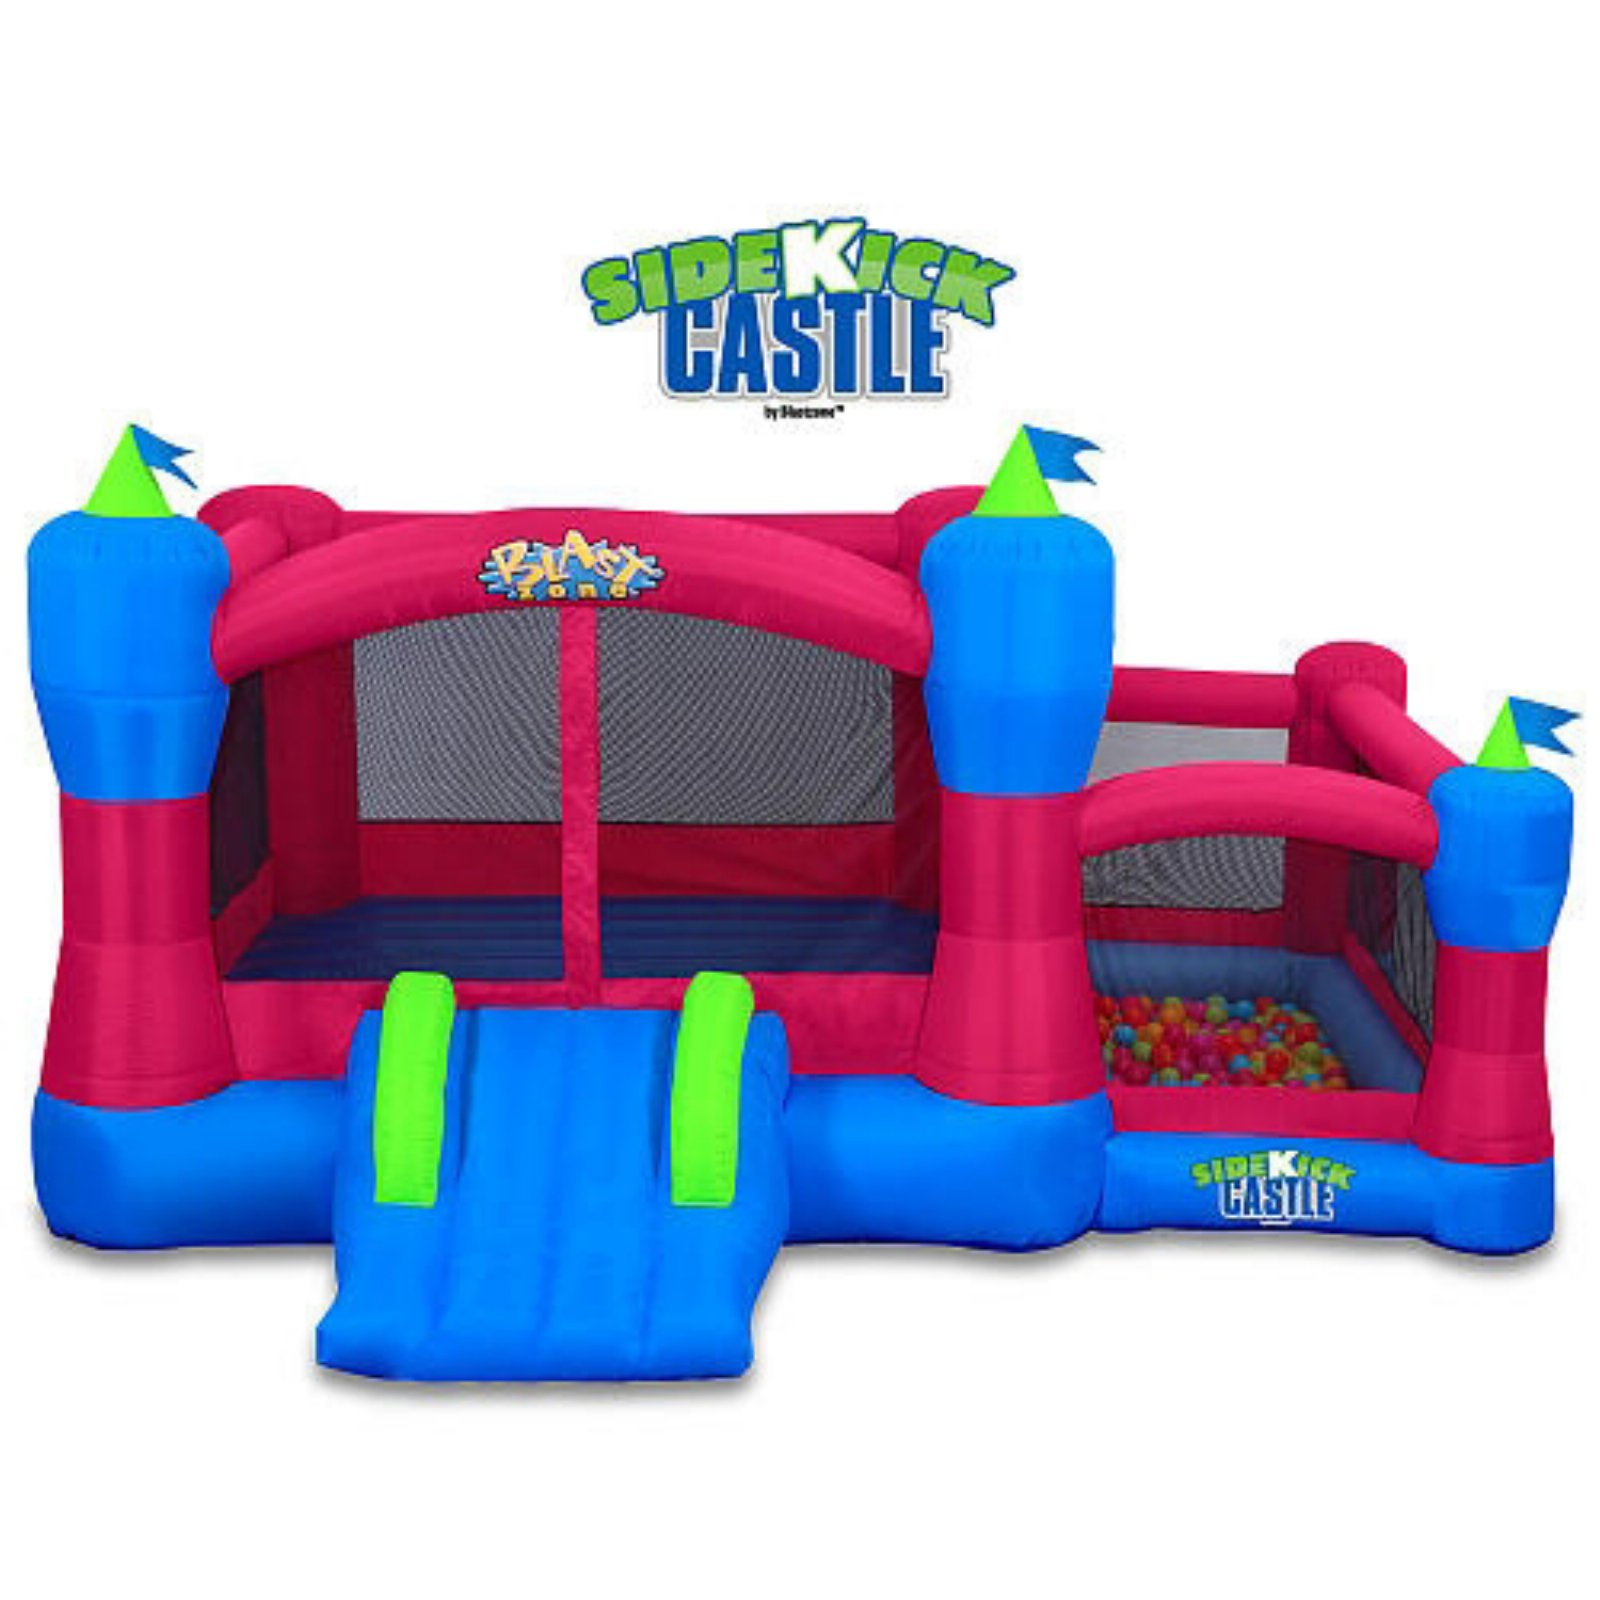 Blast Zone Sidekick Bounce House Ball Pit Slide and Hoop